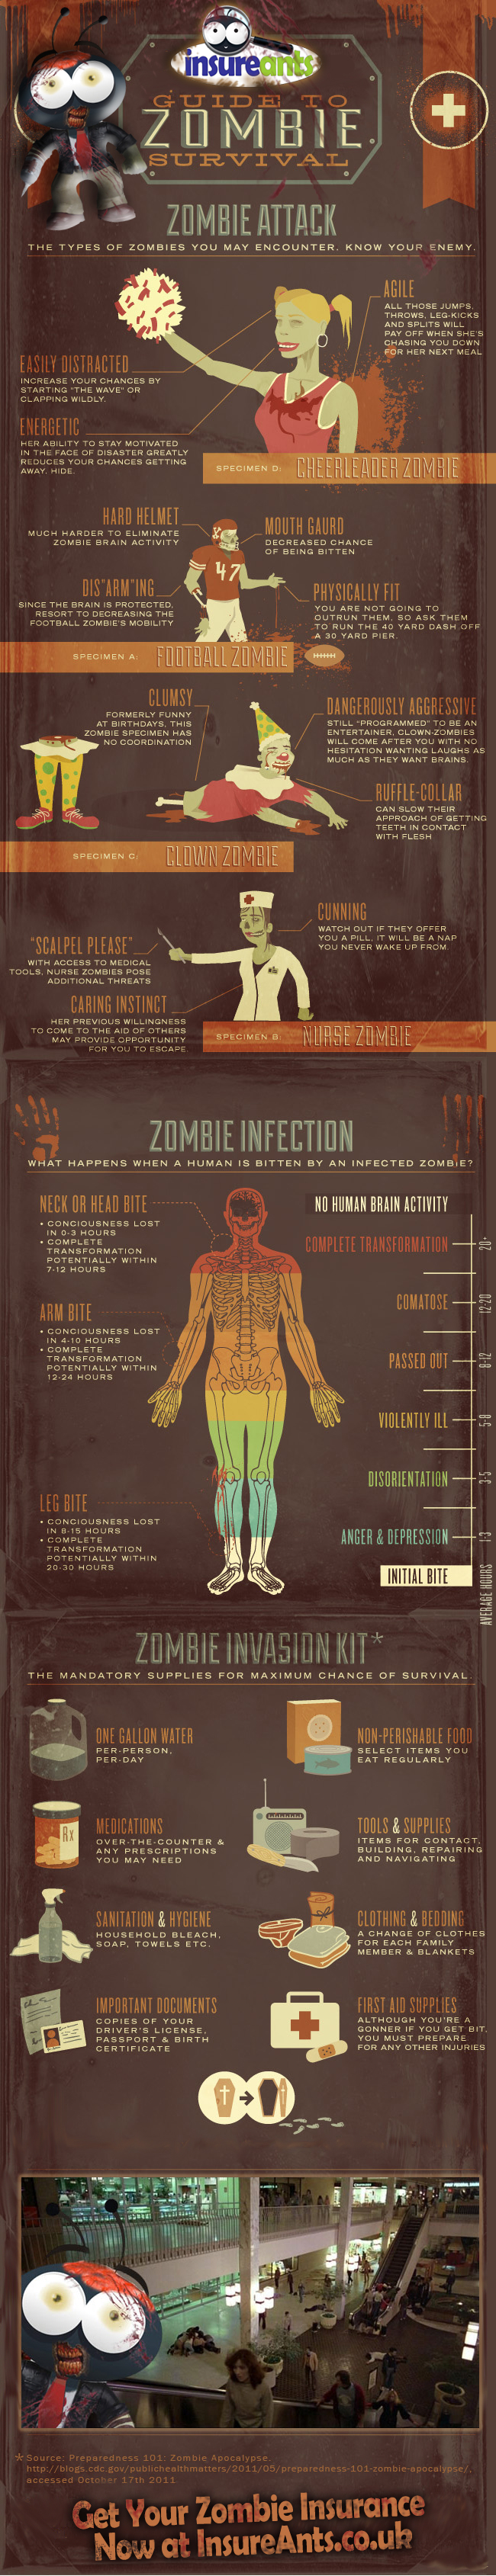 Zombie Invasion Survival Guide